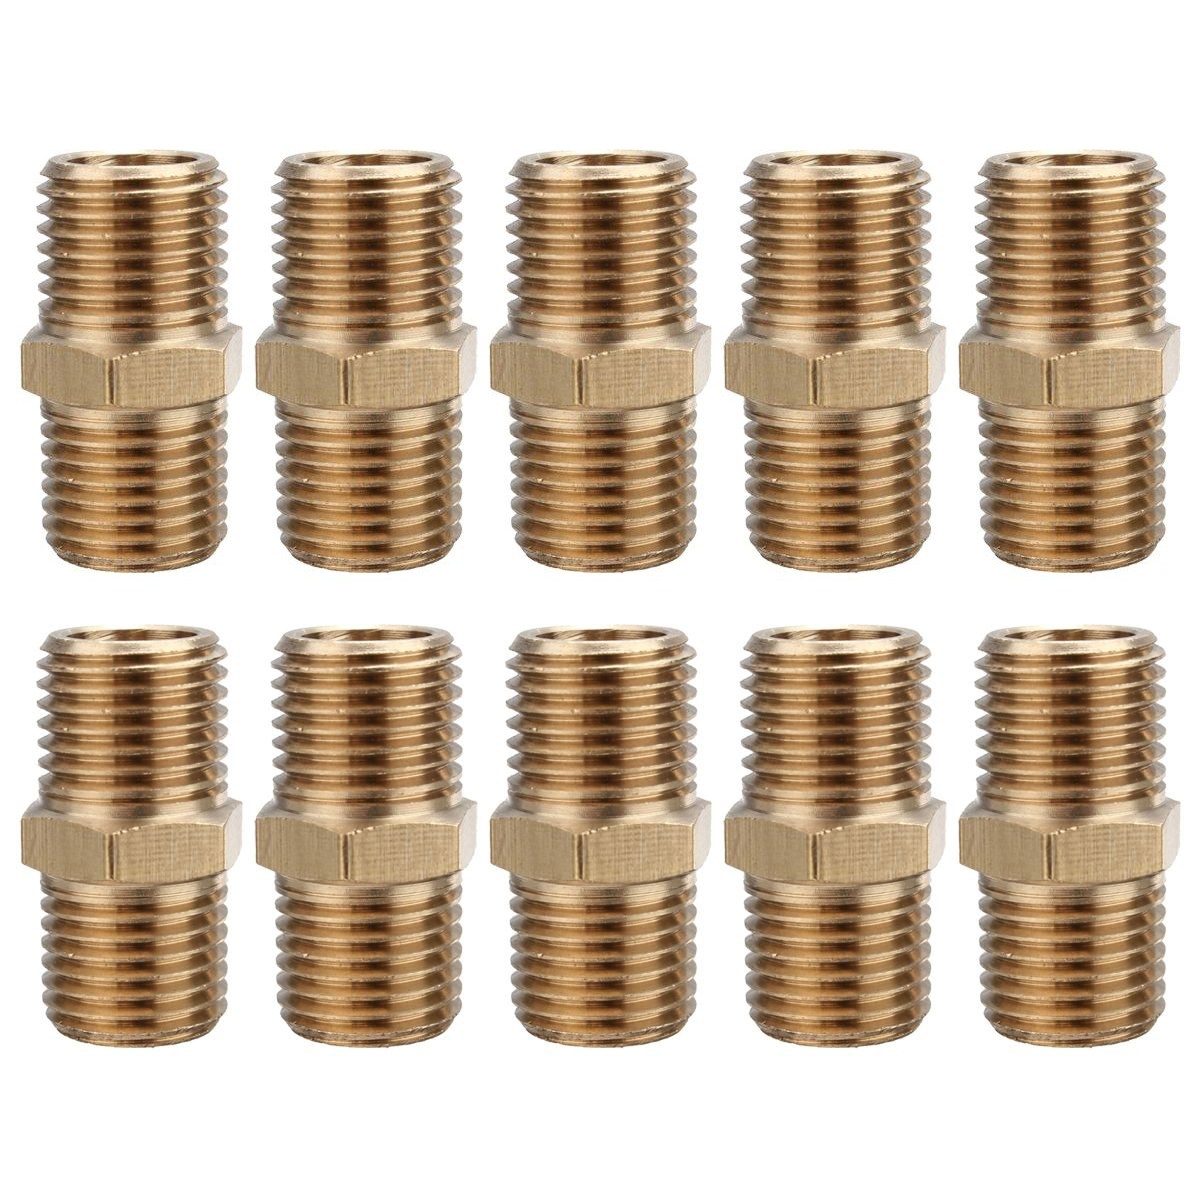 10pcs Gold Air Line Hose Connector  1/4 BSP Male Thread Euro Fitting Quick Release Set with Corrosion Resistance 4 pcs pneumatic air hose fitting 10mm brass straight barb connector adapter